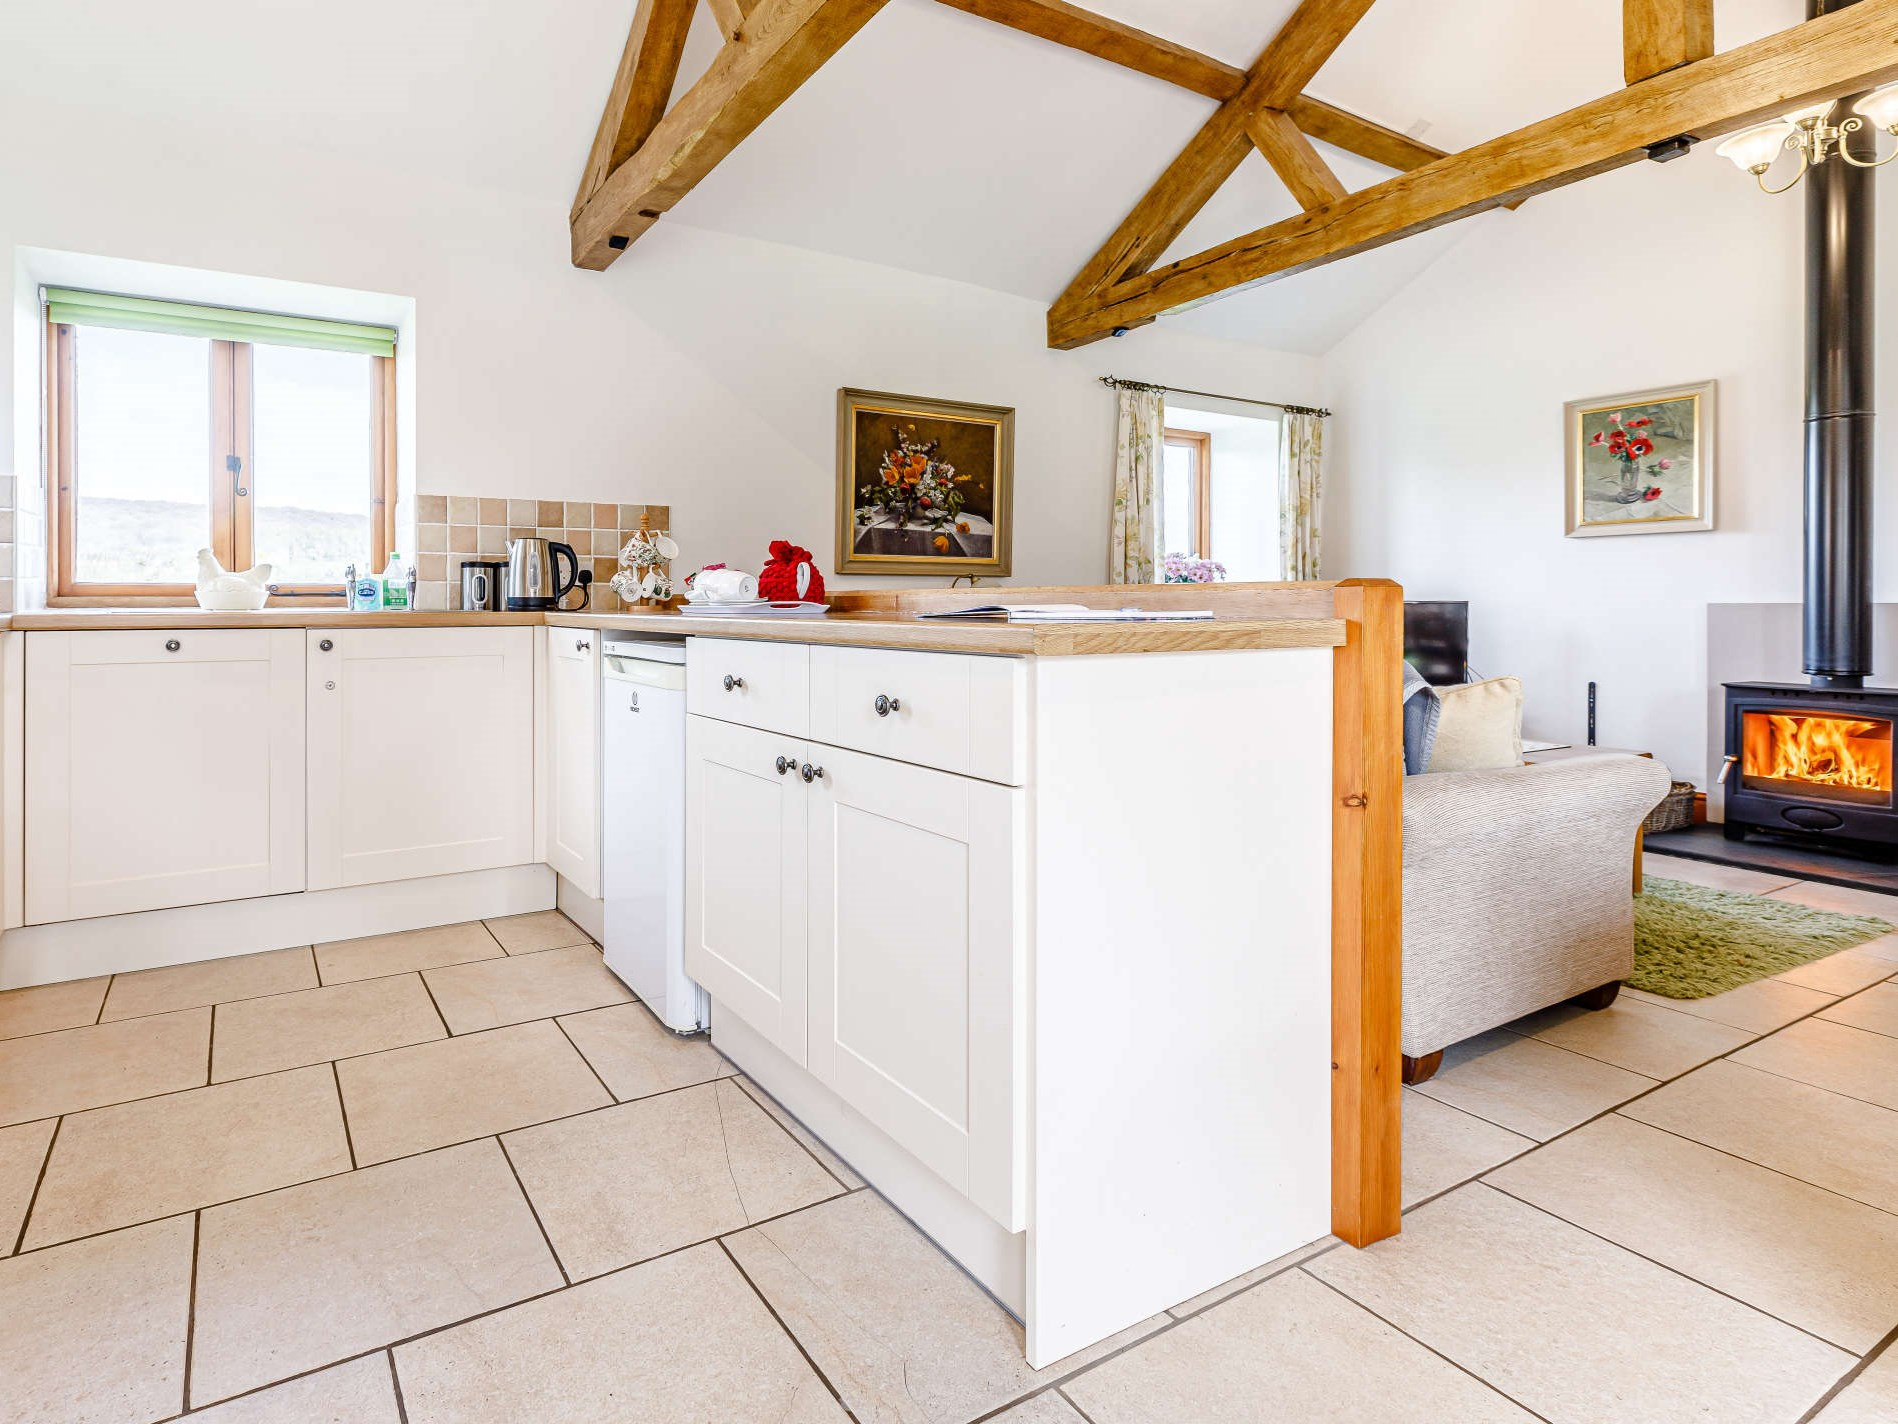 2 Bedroom Cottage in Hereford, Heart of England